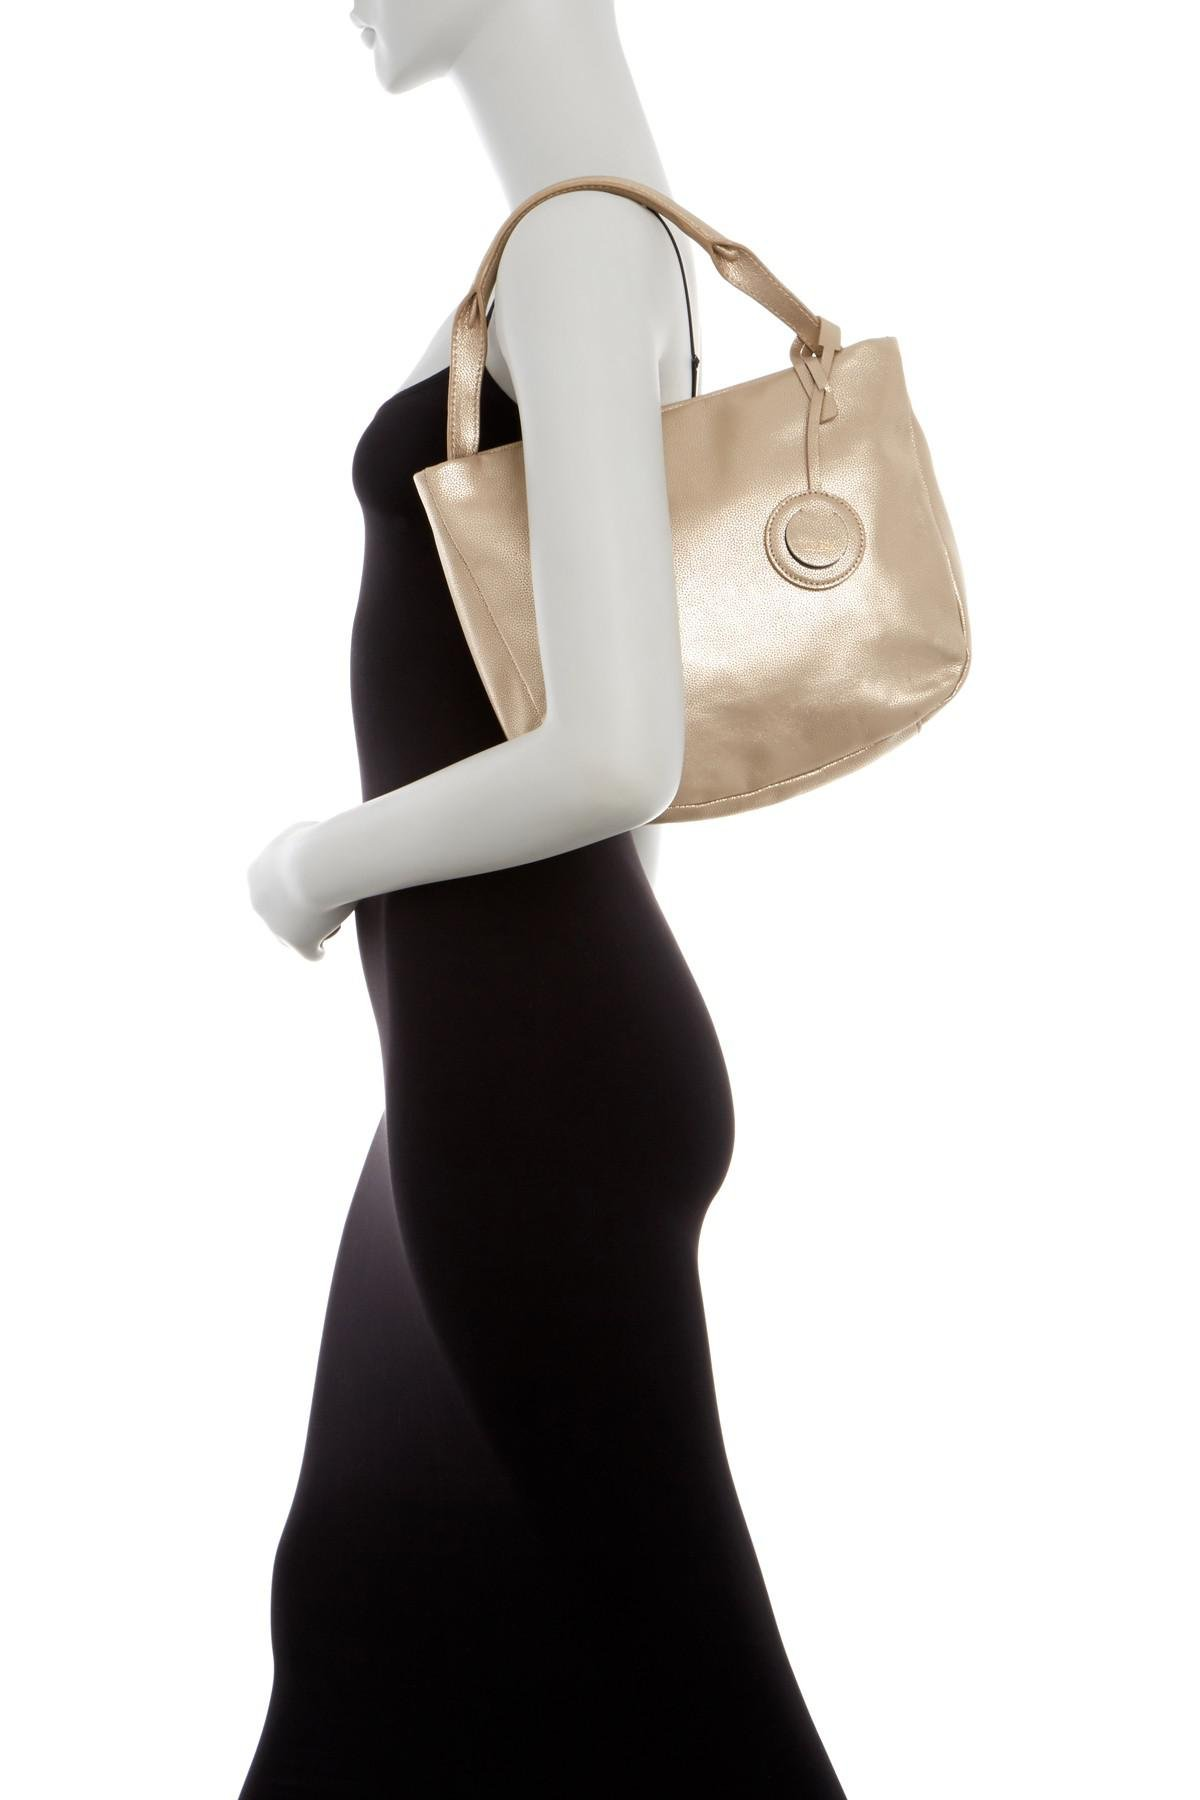 Lyst - The Sak The 120 Small Leather Hobo Bag 30b8112af7